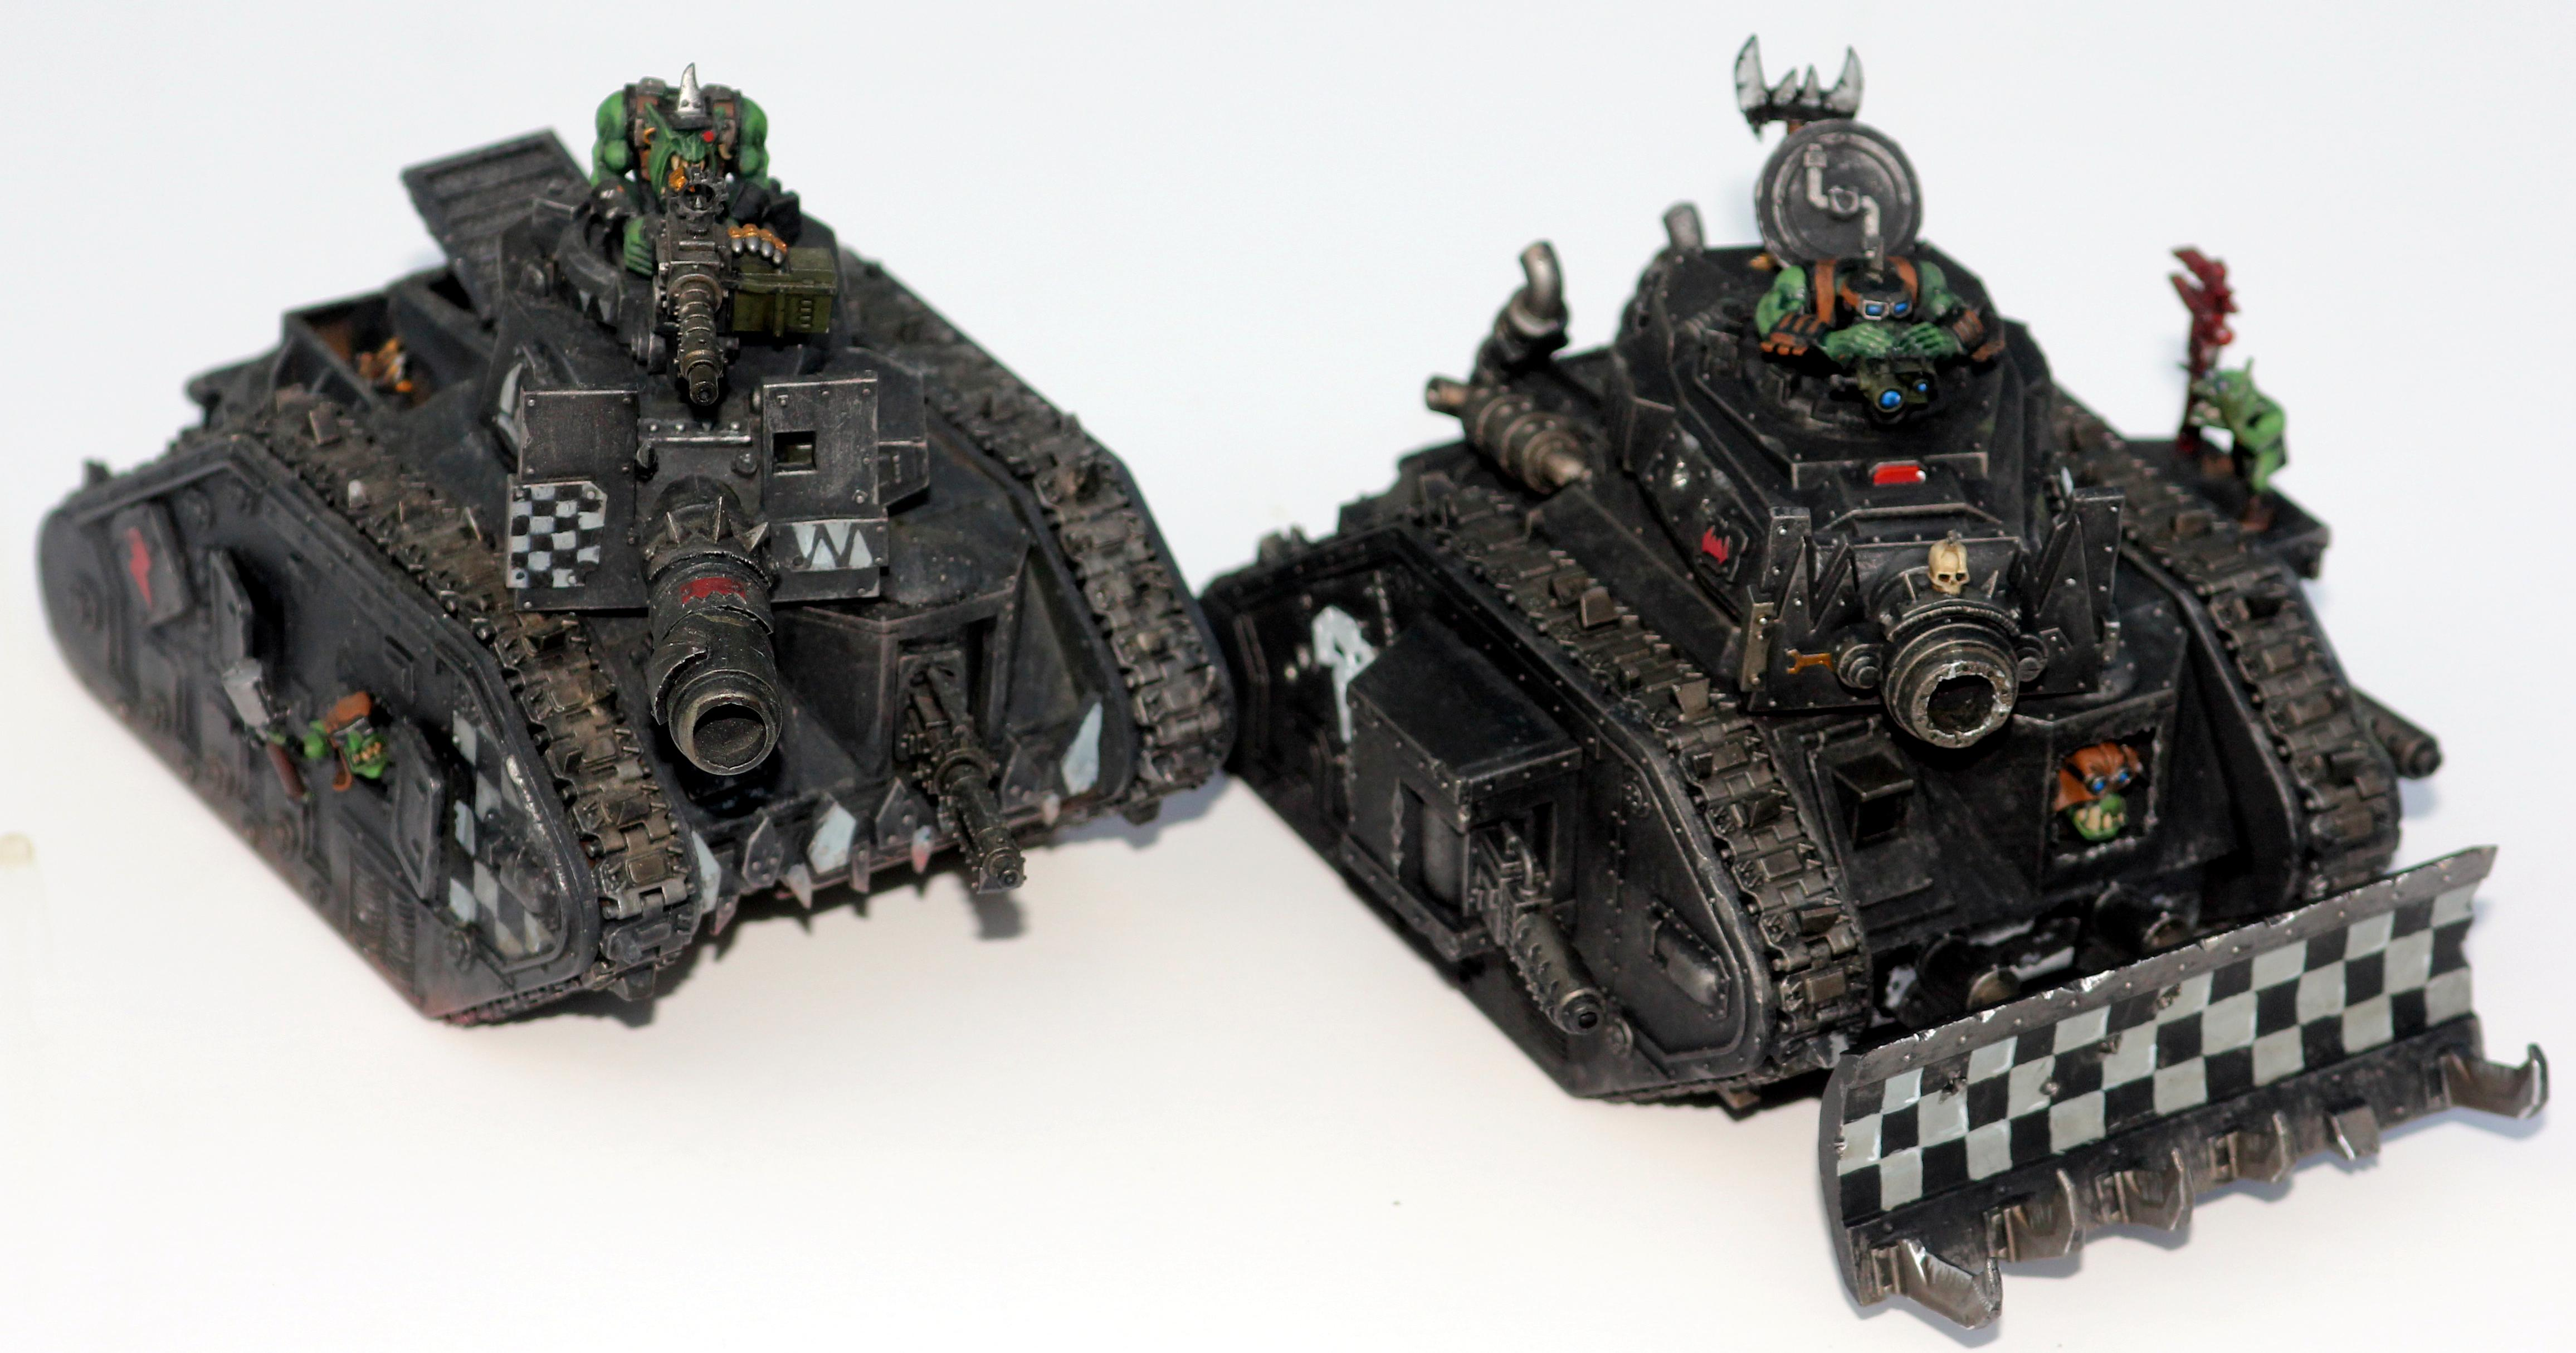 Chimera, Highlights, Looted Wagon, Orks, Warhammer 40,000, Weathered